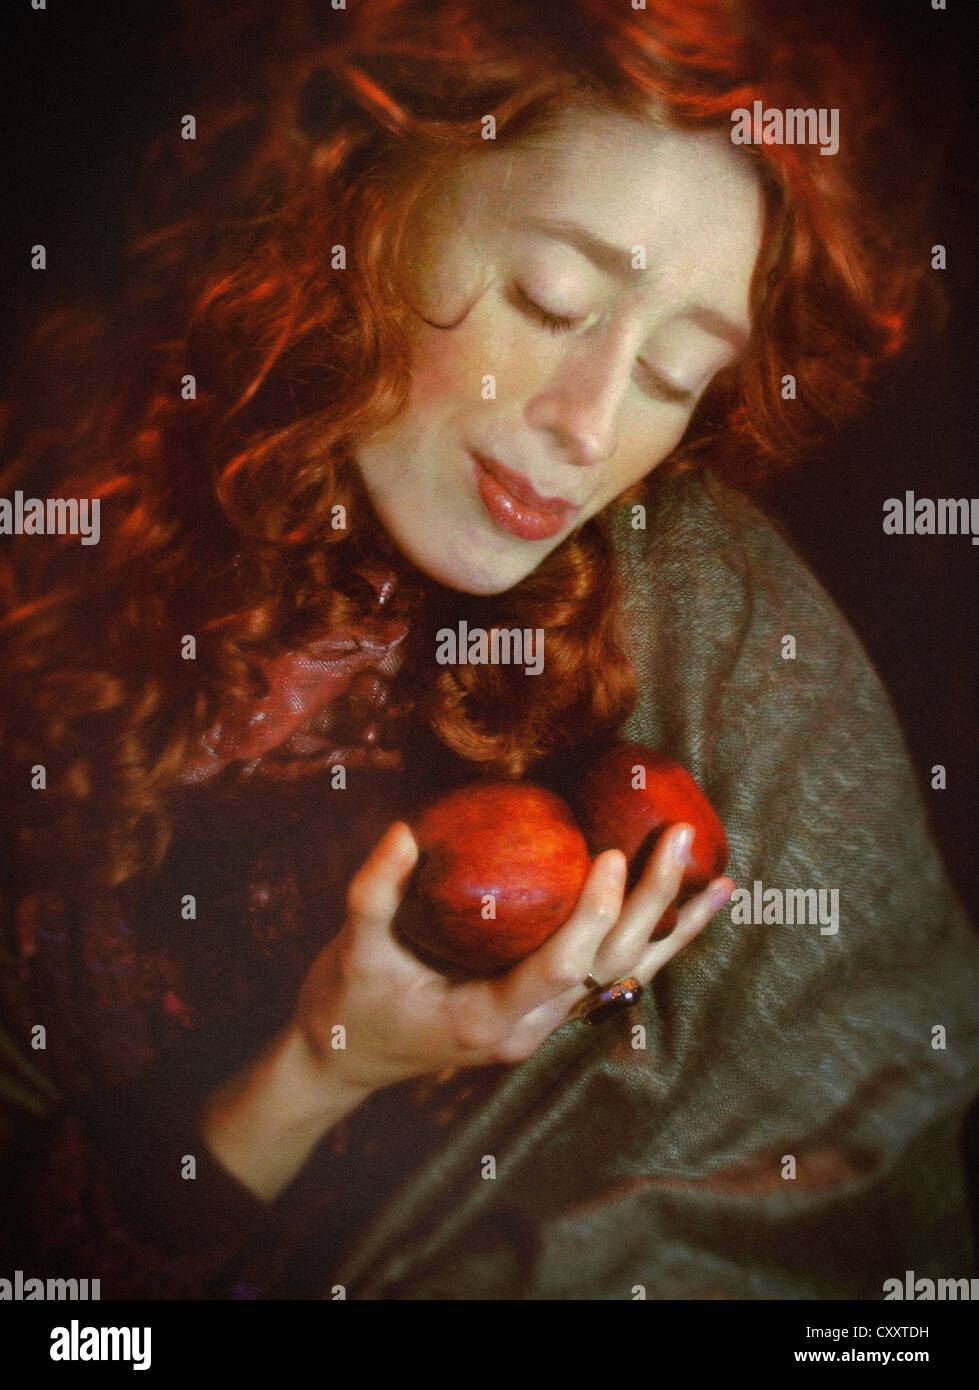 A woman in a scarf , with long red curls and red cheeks and lips, holding a pair of red apples. - Stock Image